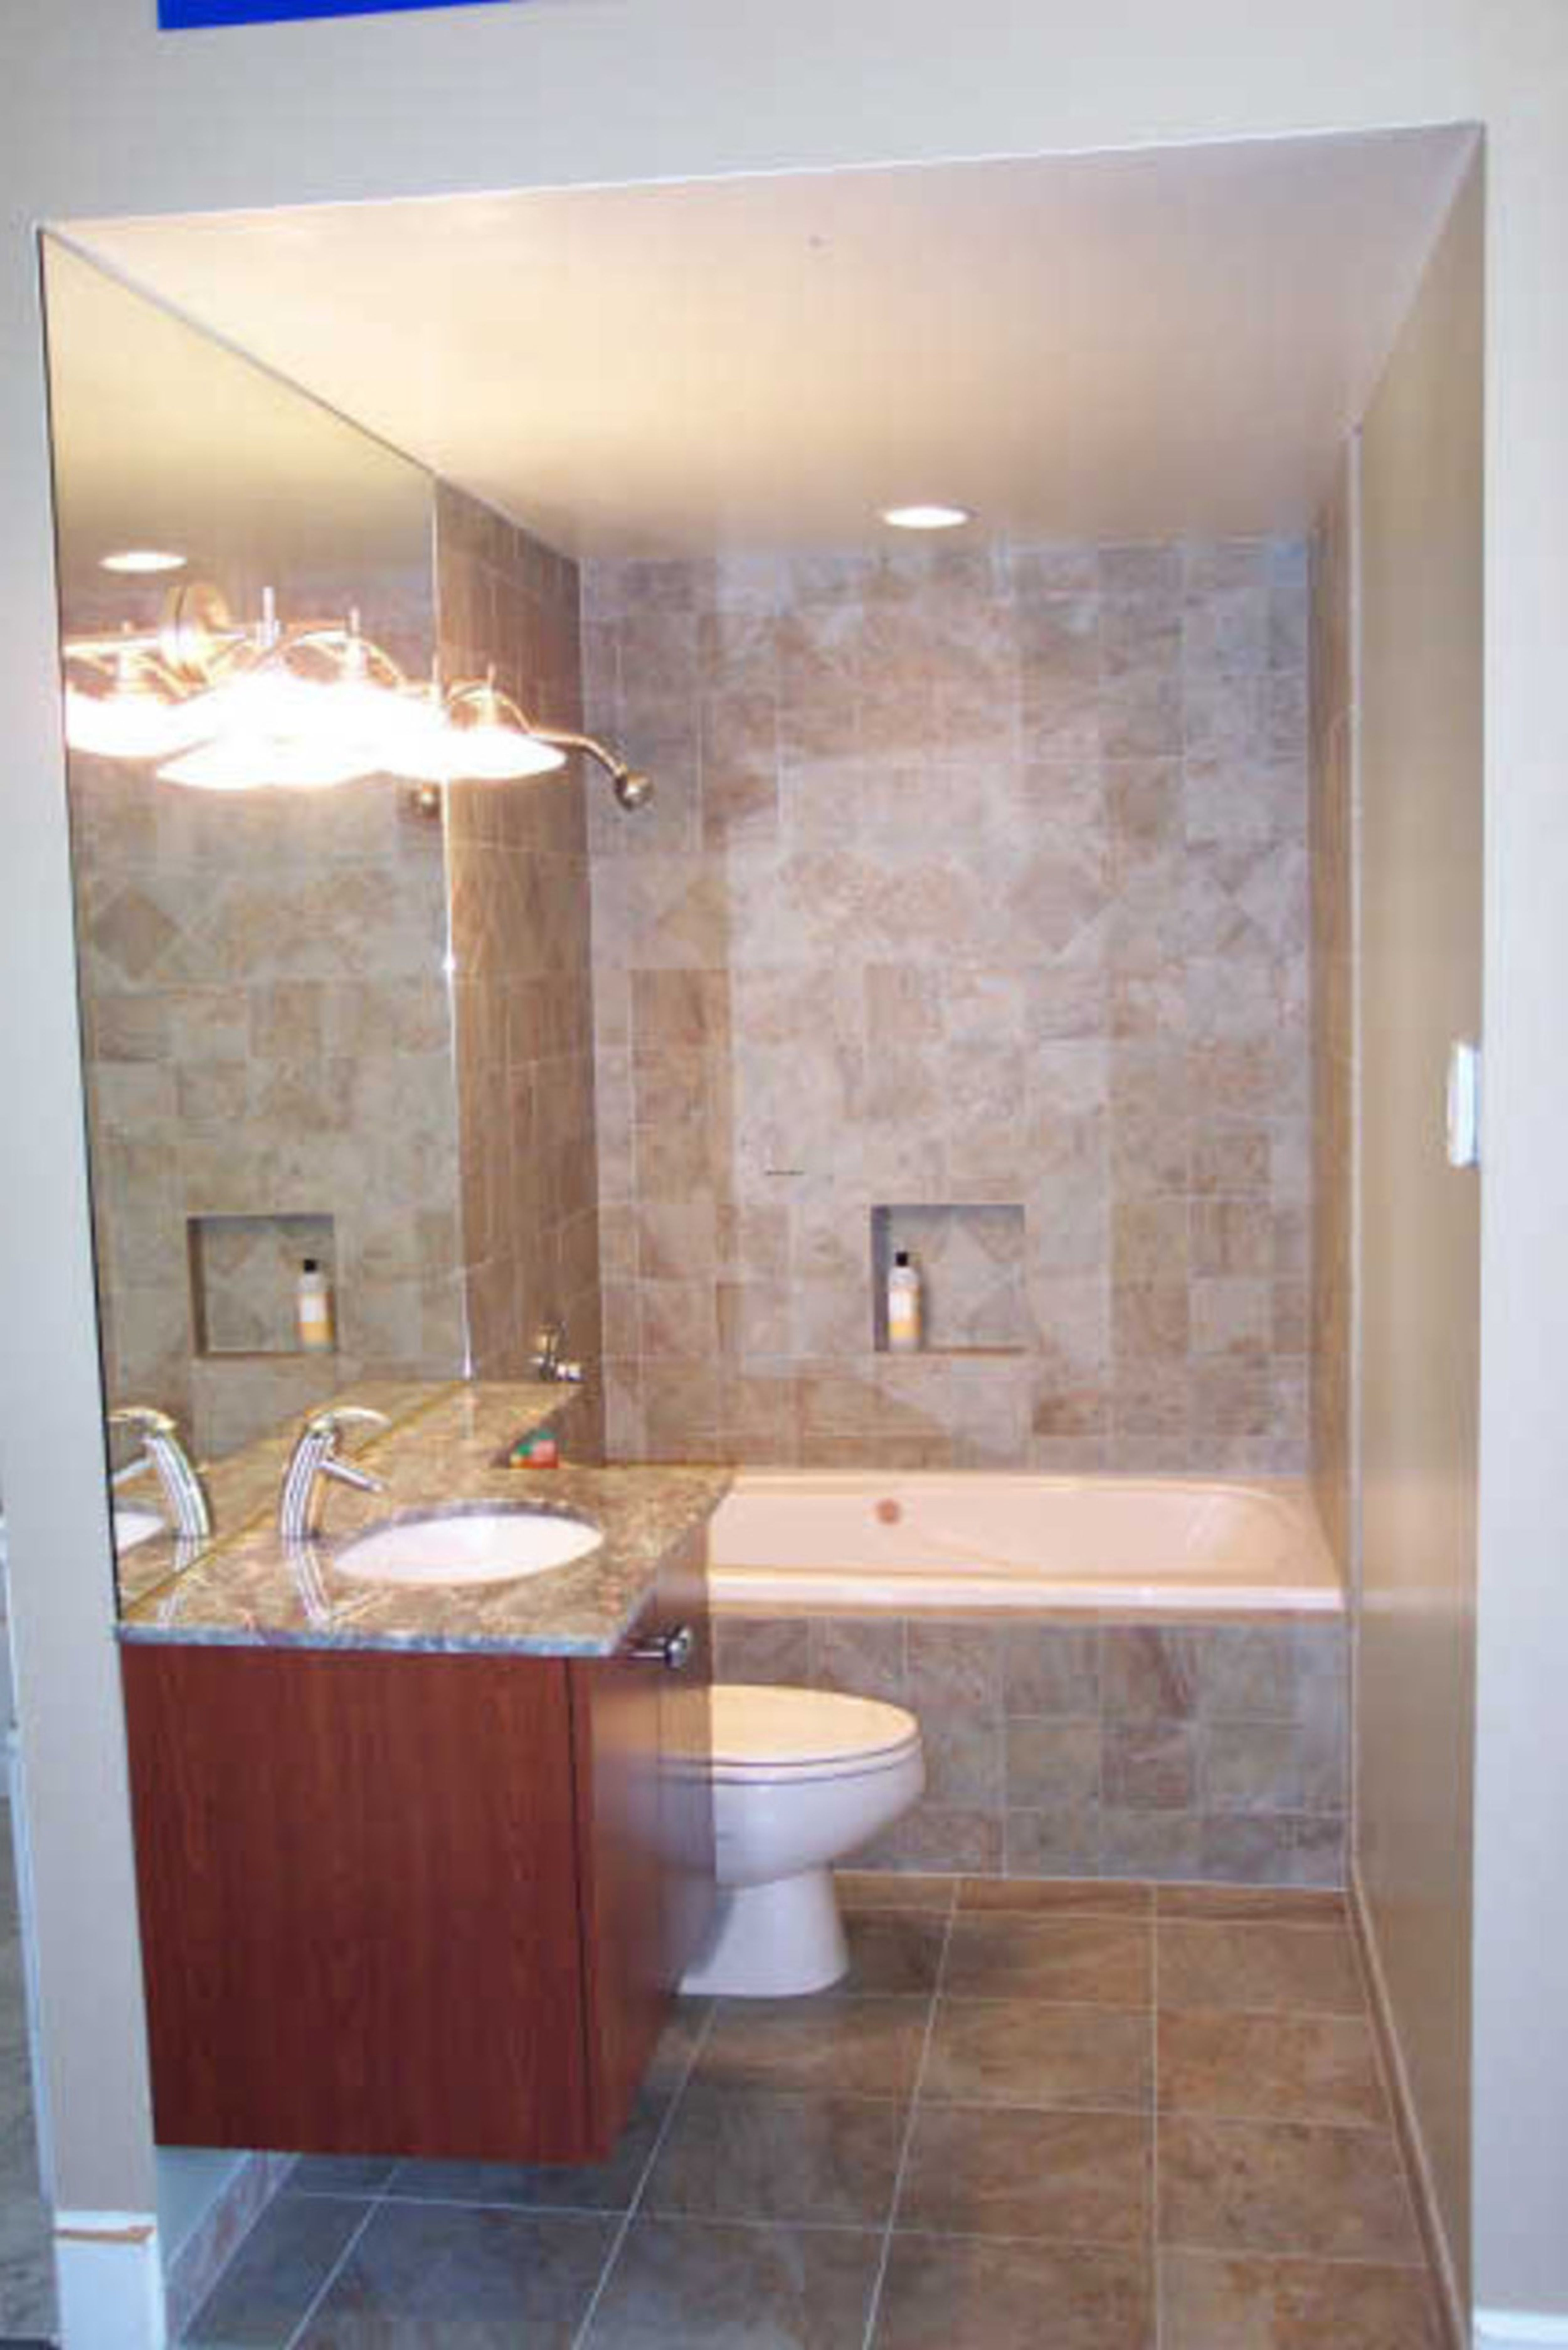 Best Of Bathroom Remodel Ideas with Tub and Shower